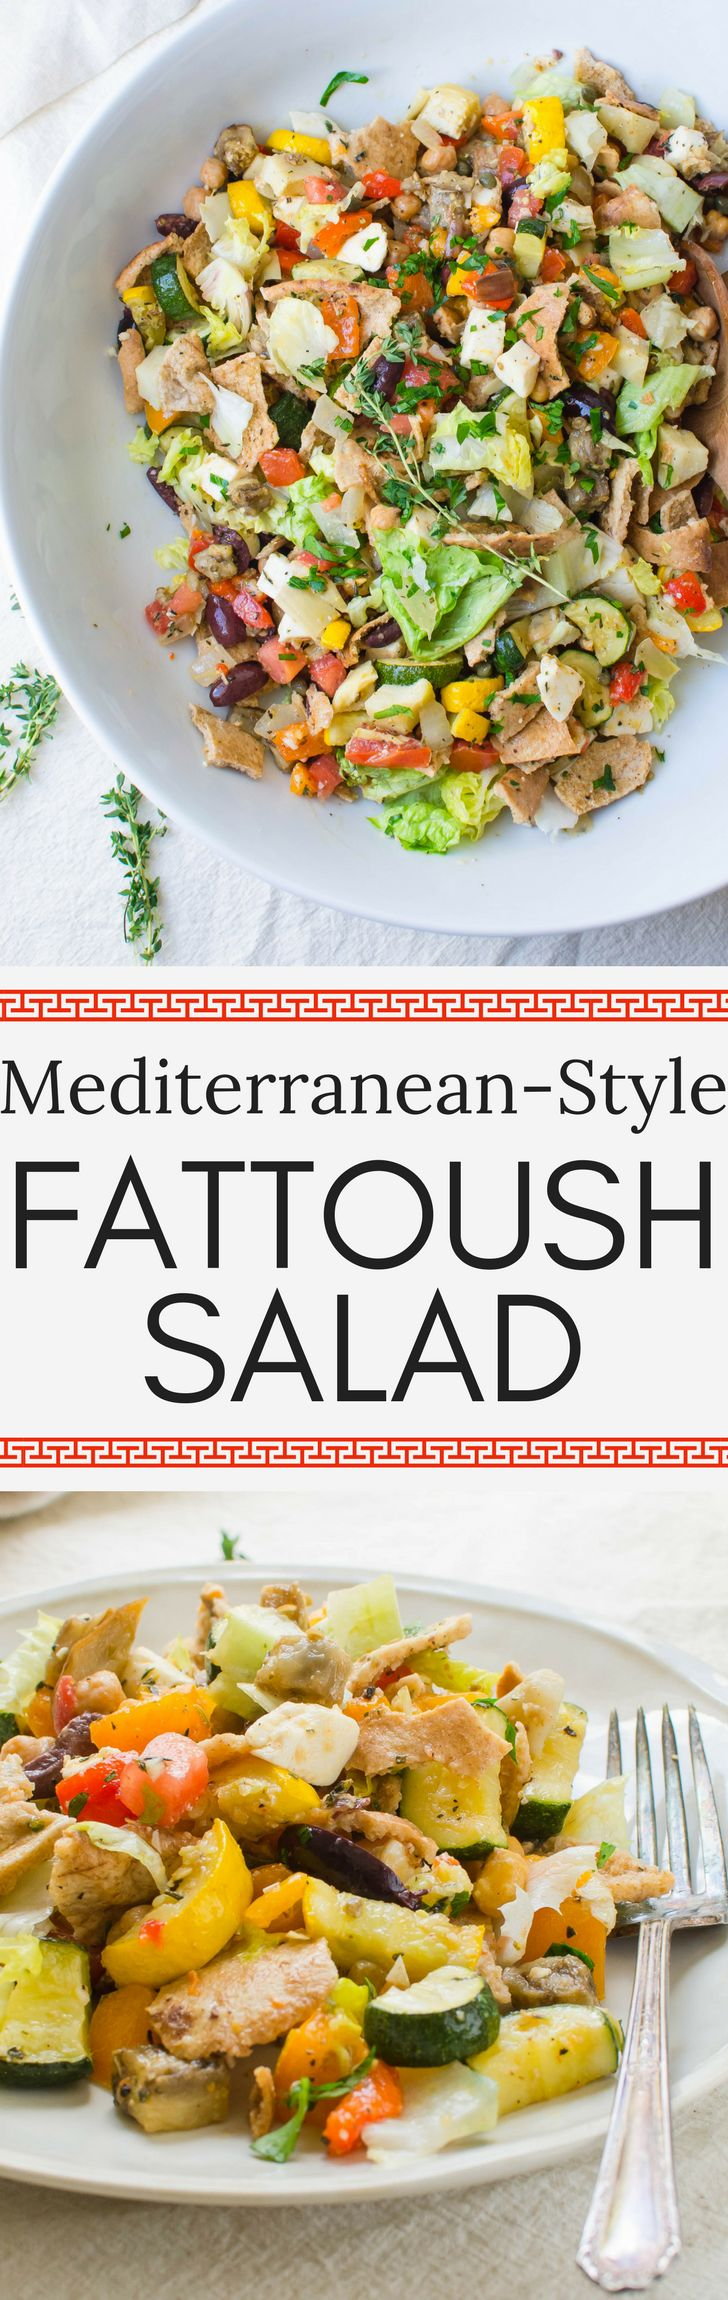 Inspired by Lebanese fattoush this inauthentic, but delicious Mediterranean-Style Fattoush Salad recipe has the best way to cook eggplant. Learn how to make fattoush as a great vegetarian or vegan main dish or fresh side dish to grilled foods. #fattoush #fattoushsalad #pitabread #pitasalad #panzanella #zucchini #eggplant #howtoroastvegetables #howtocookeggplant #fattoushsaladrecipe #breadsaladrecipe #roastedvegetables #fennel #homemadedressing #homemadevinaigrette #lemonvinaigrette…